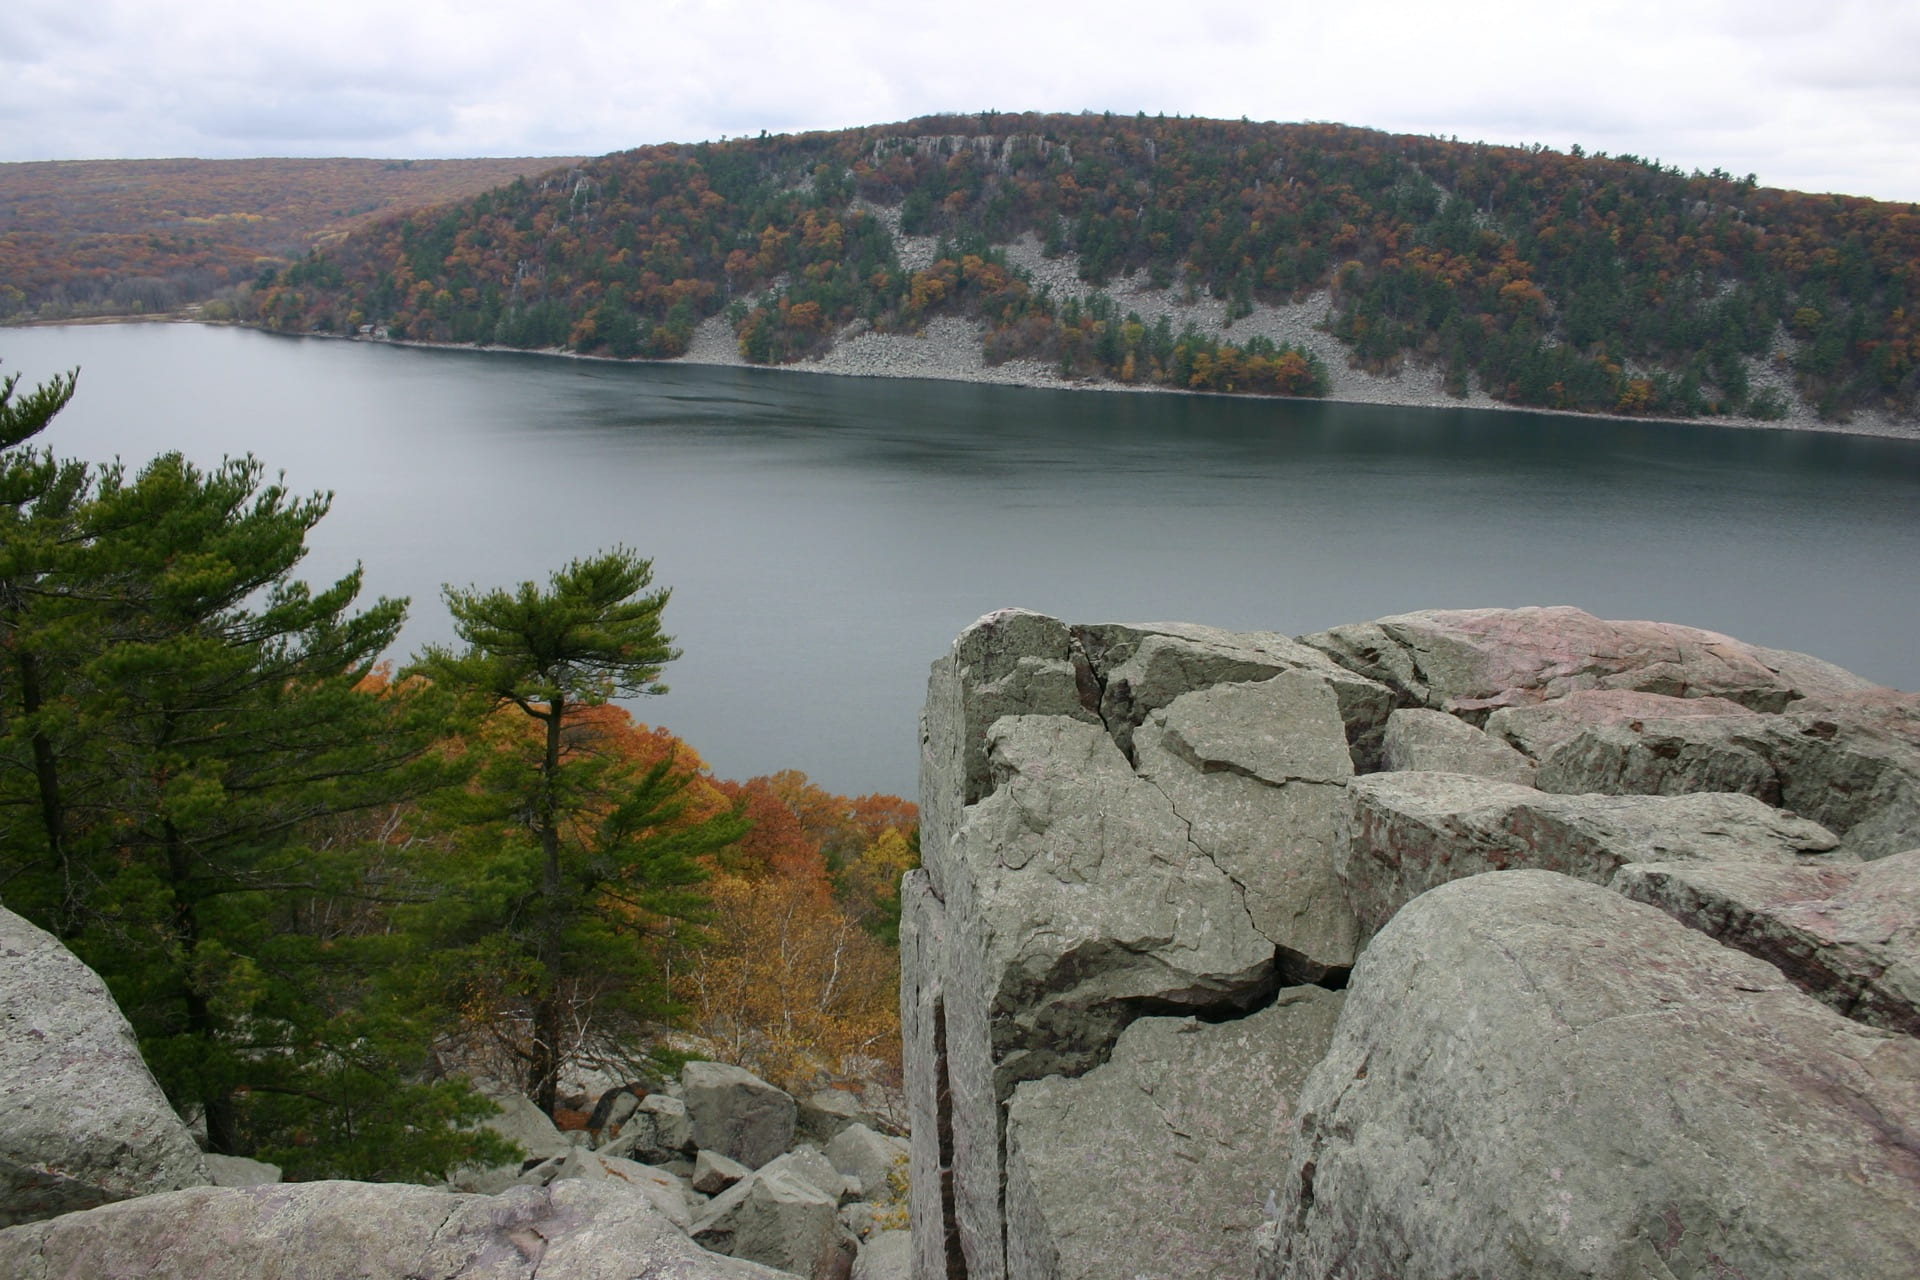 Water view of the bluffs of Baraboo Hills